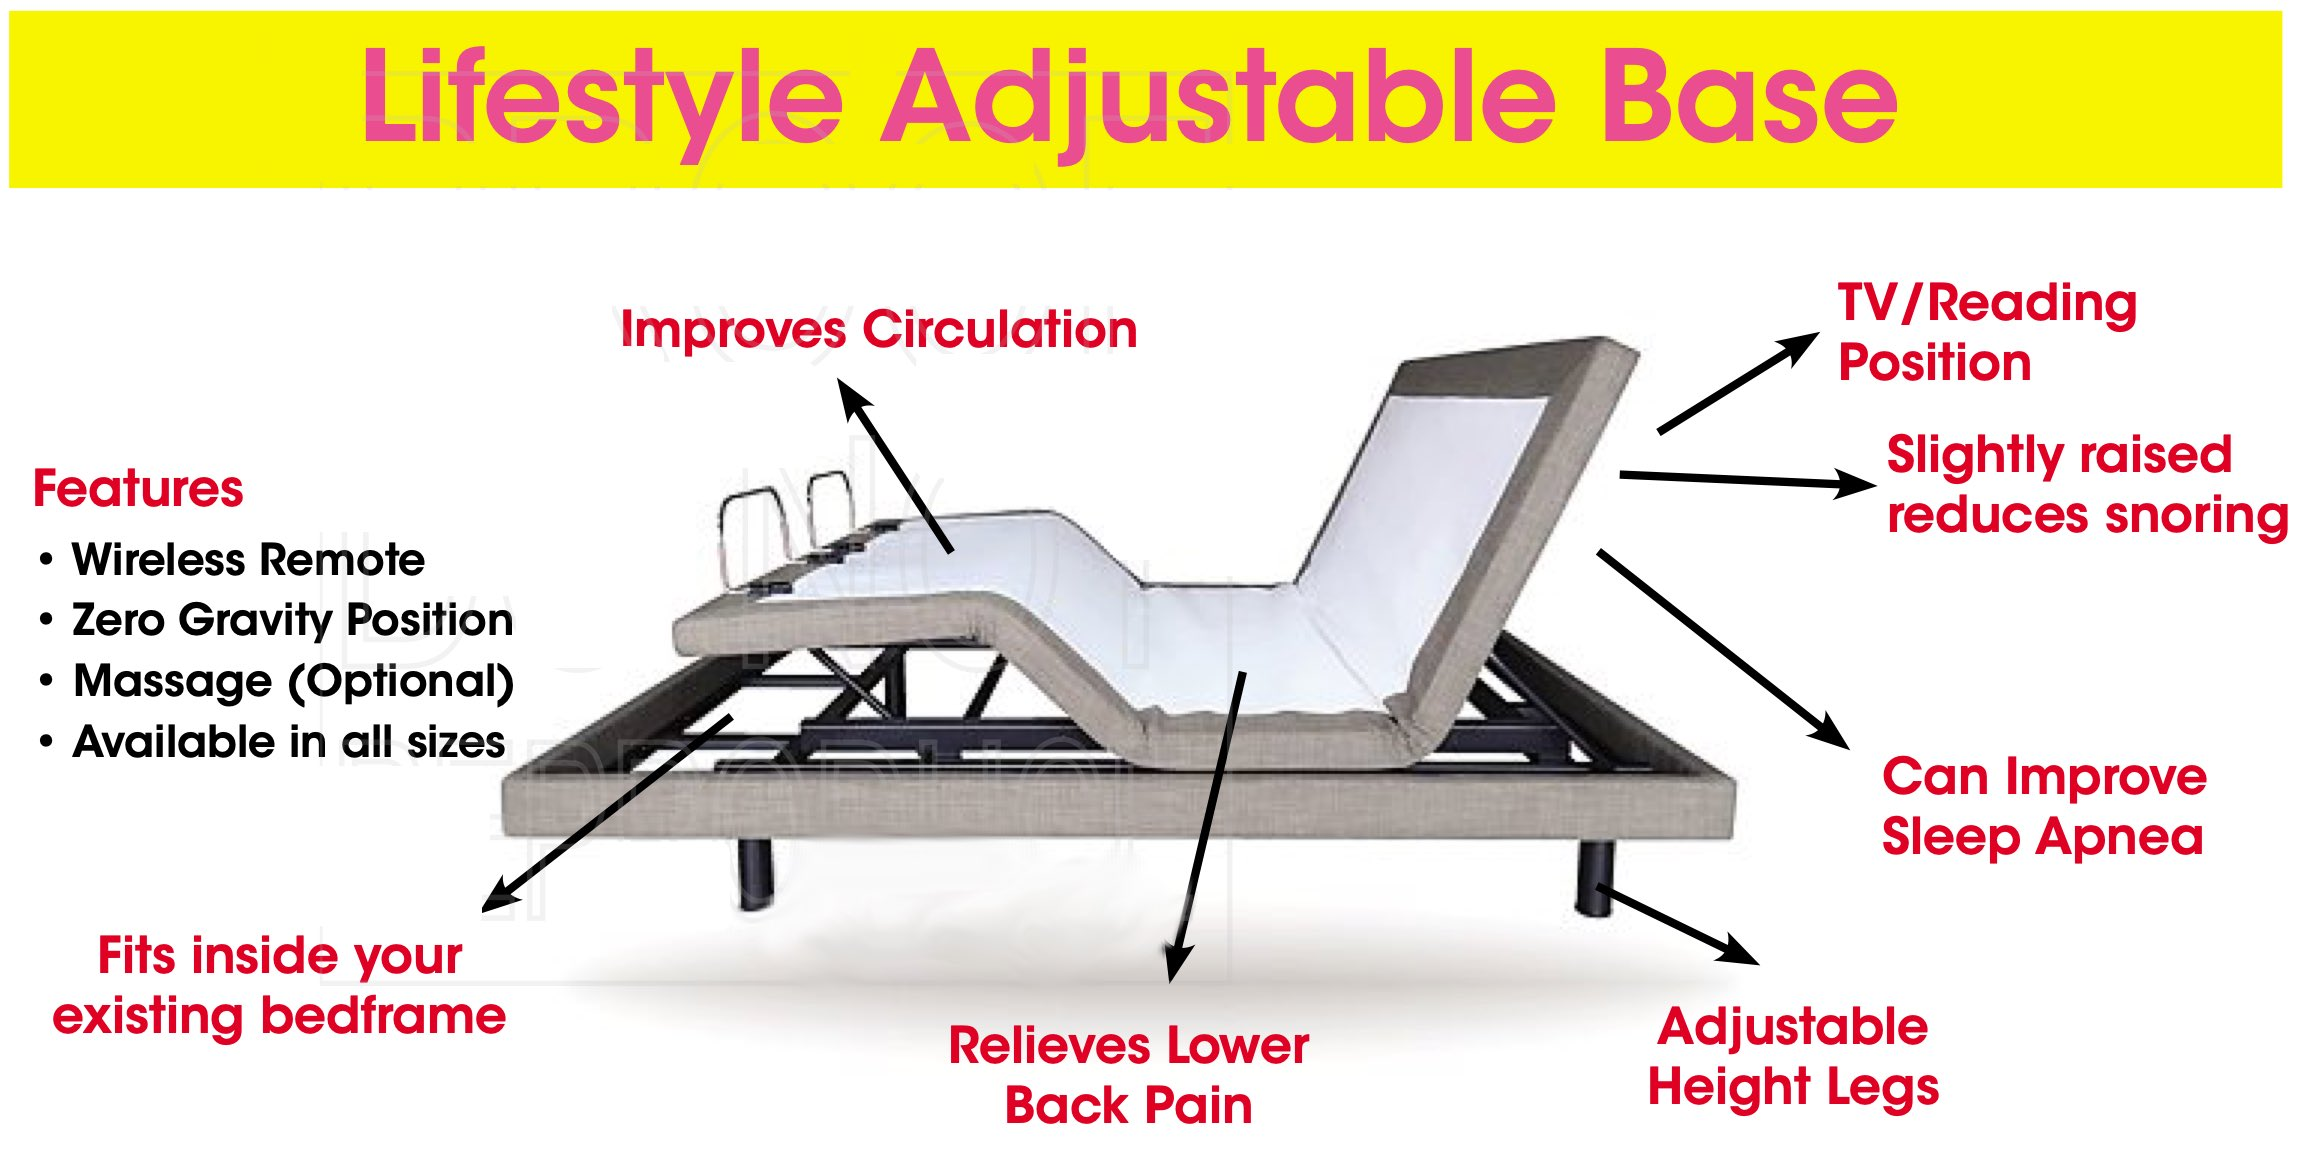 lifestyle adjustable base